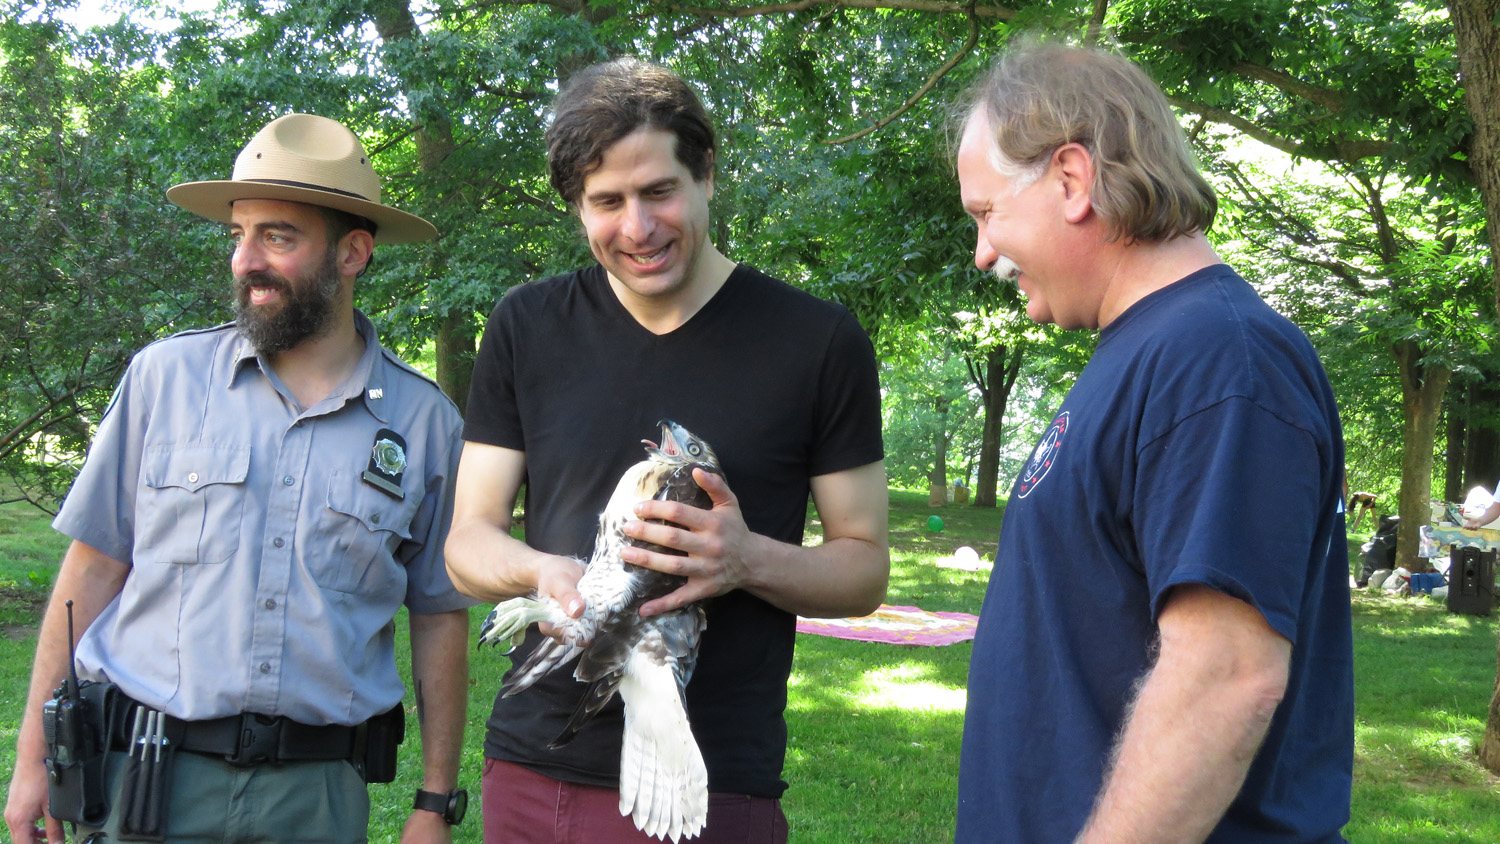 Hope with Ranger Dan Tainow and Sgt. Rob Mastrianni of the Urban Park Rangers and Bobby Horvath of WINORR, June 16